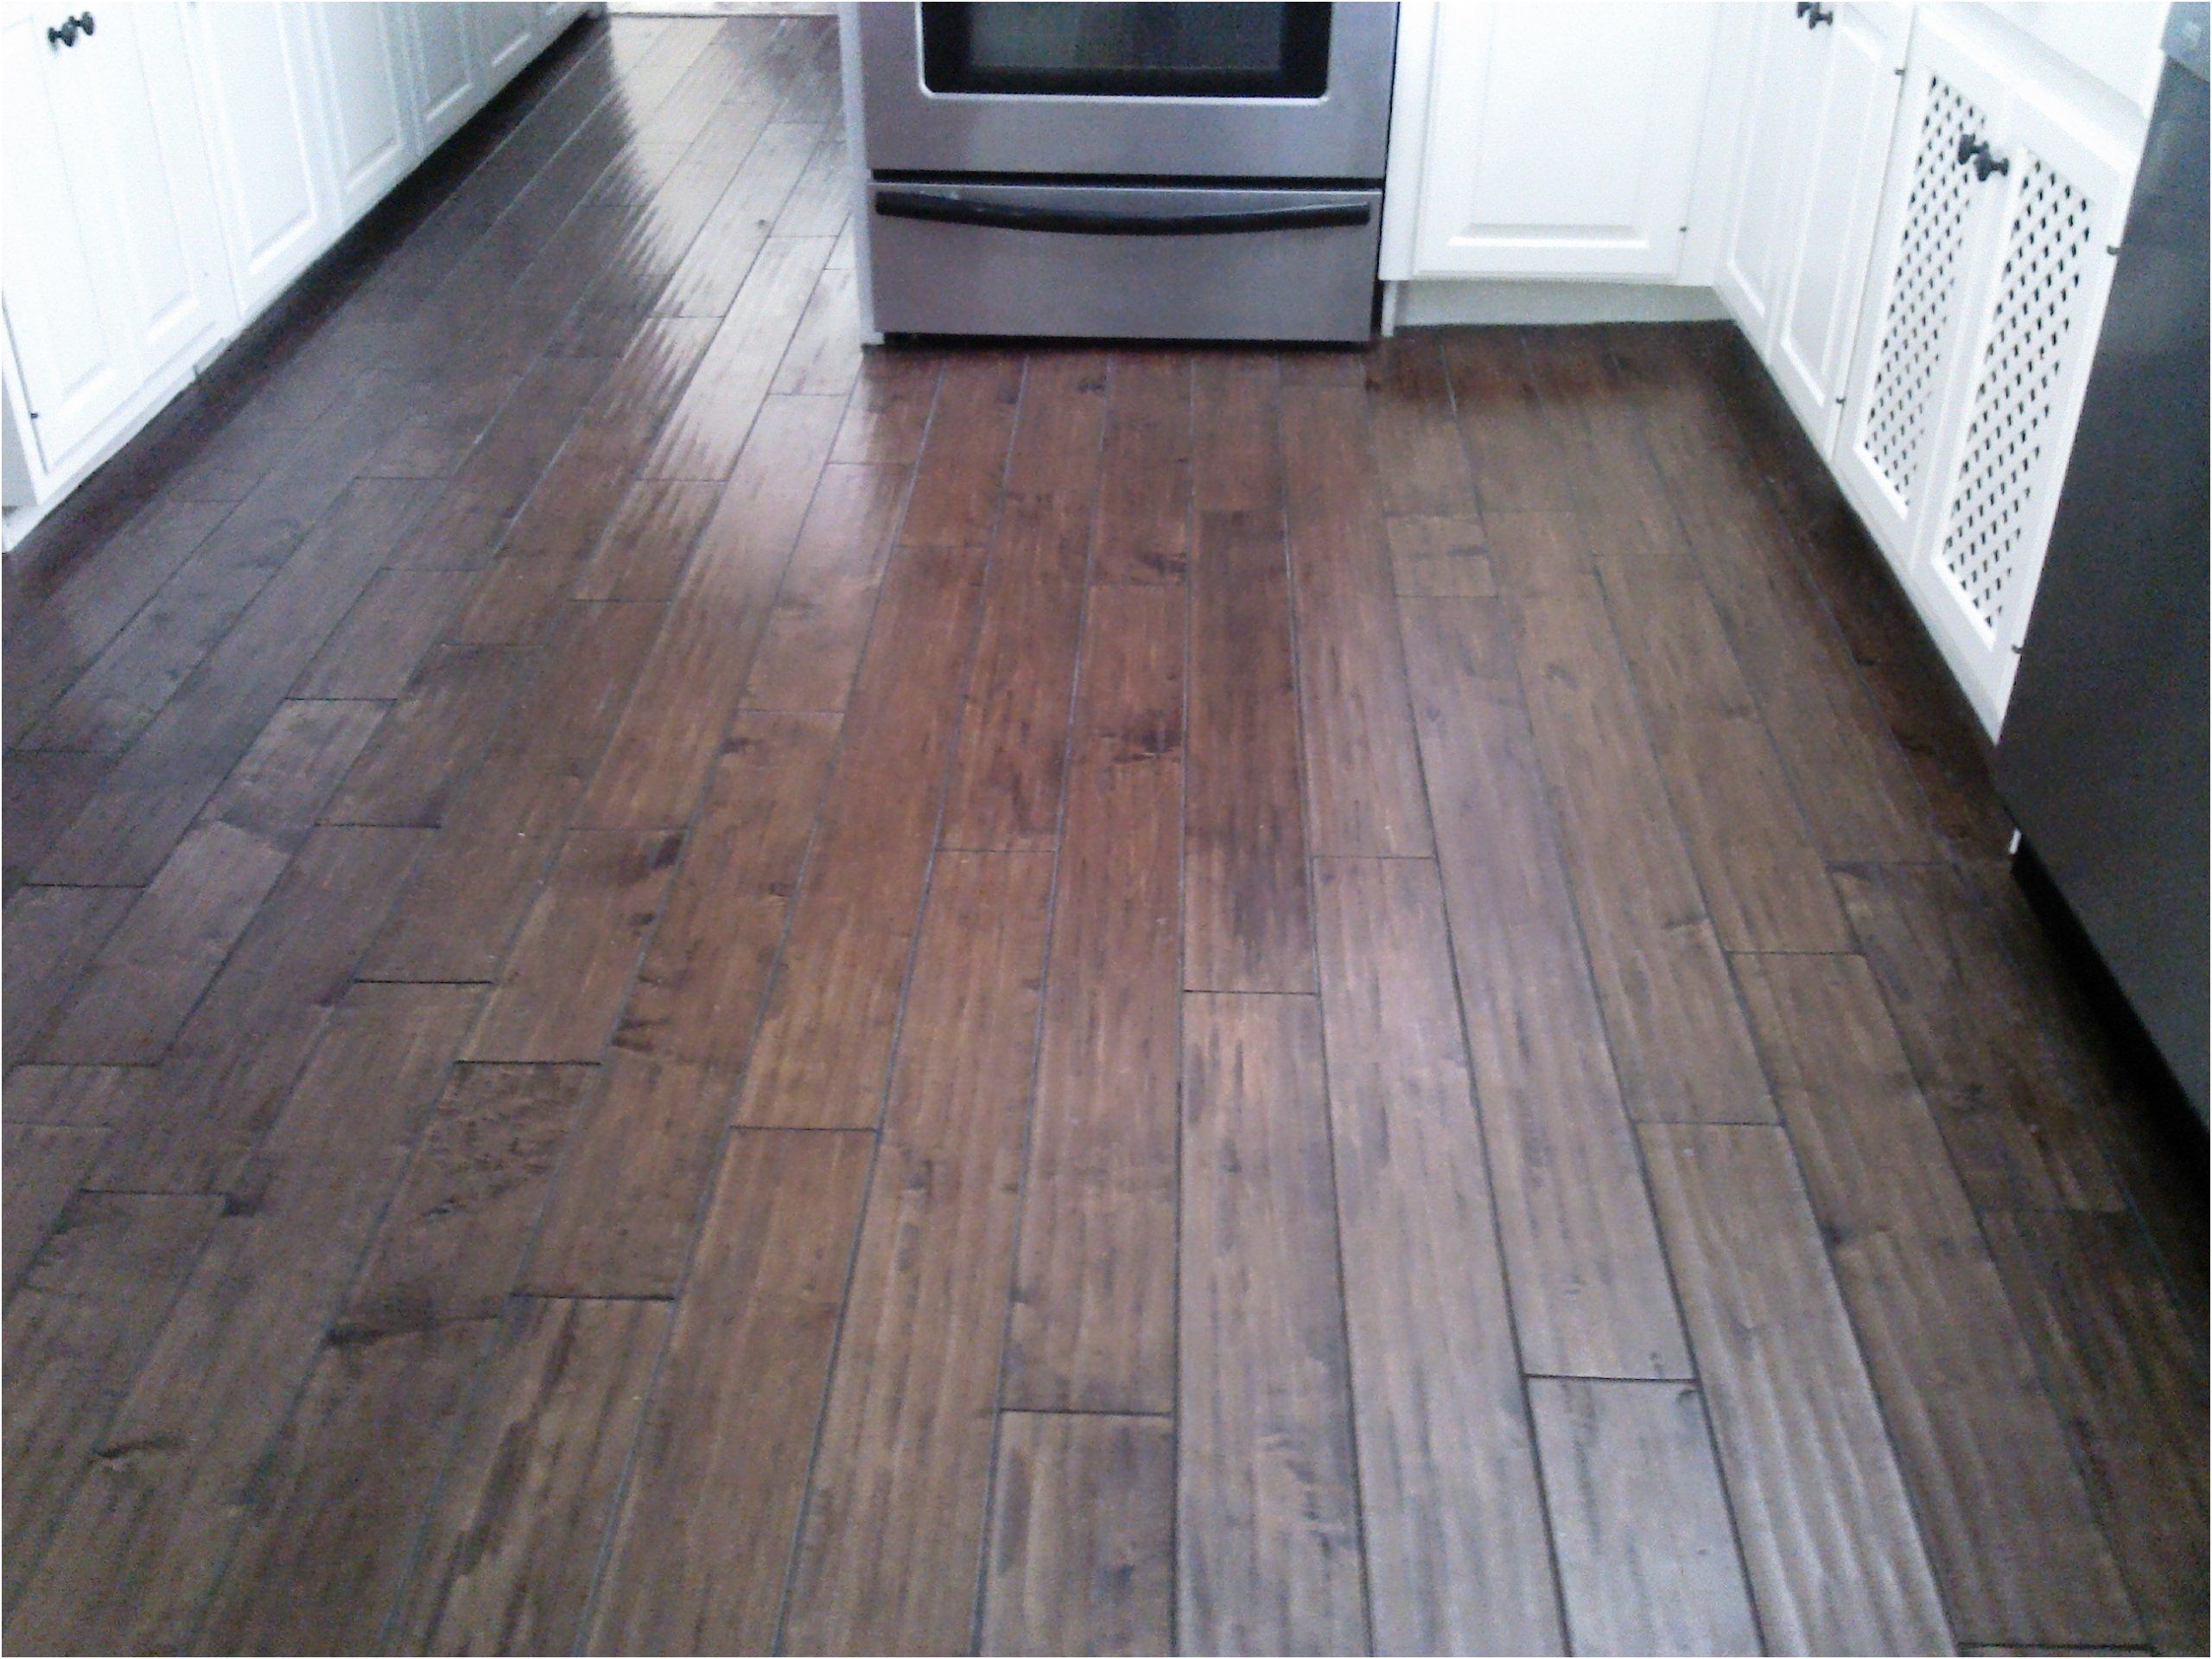 Luxury Vinyl Plank Flooring Vs Engineered Hardwood Of Luxury Vinyl Flooring Vs Laminate Stock Luxury Vinyl Wood Flooring with Luxury Vinyl Flooring Vs Laminate Stock Luxury Vinyl Wood Flooring Reviews Tags 46 Outstanding Wood Vinyl